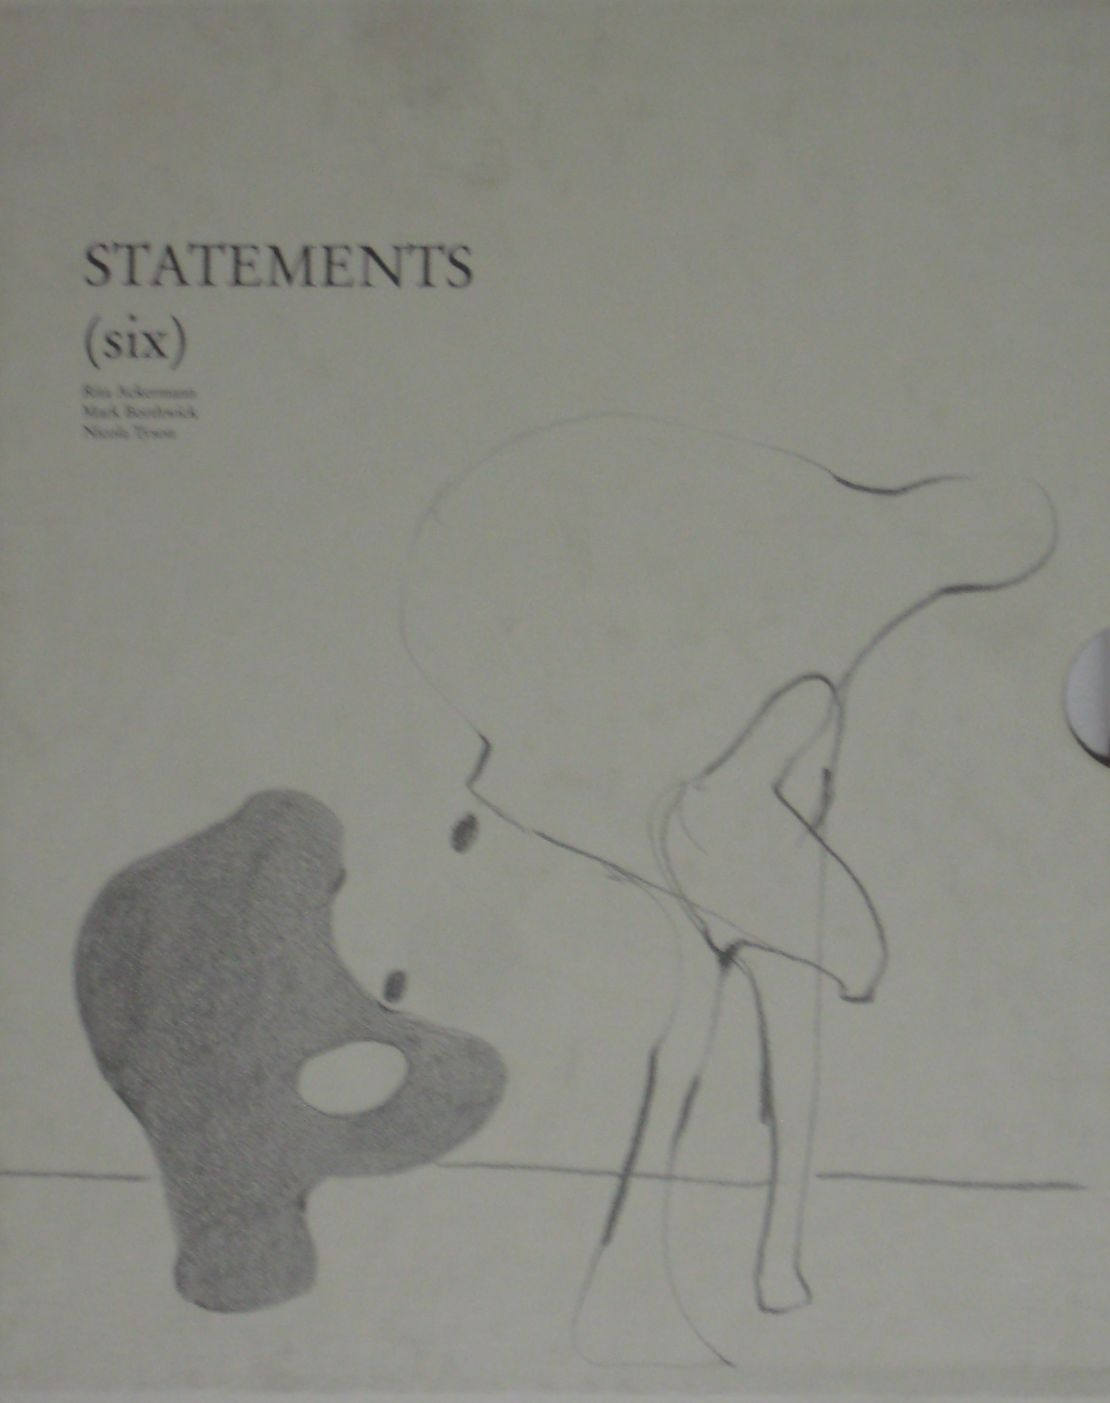 【古本】STATEMENTS (SIX) RITA ACKERMANN MARK BORTHWICK NICOLA TYSON